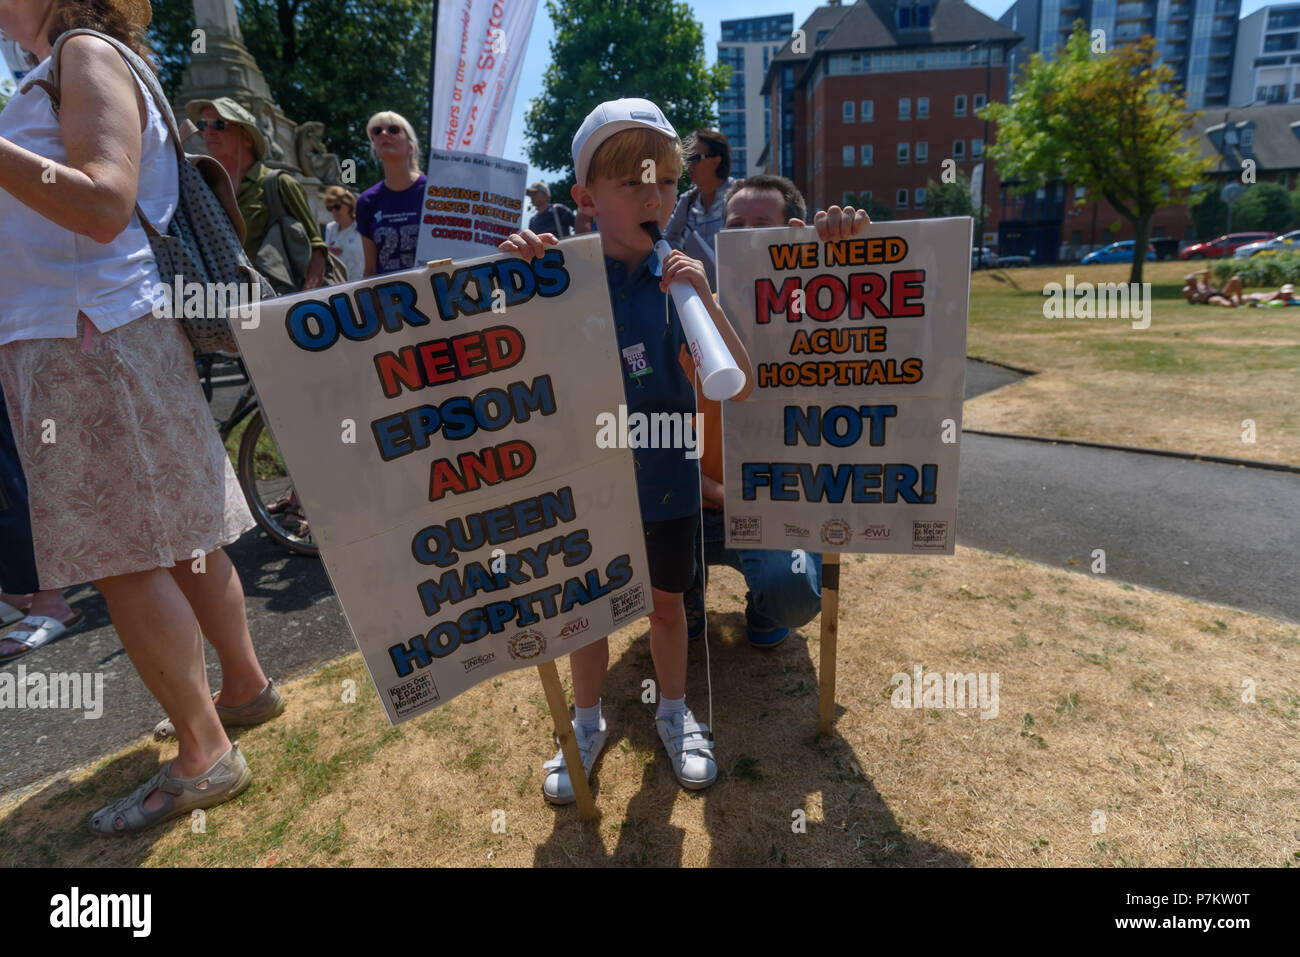 London, UK. 7th July 2018. A young supporter of the Keep Our St Helier Hospital (KOSHH) campaign against the closure of acute facilities at Epsom and St Helier Hospitals in south London blows a vuvuzela before they march to celebrate the 70th Birthday of the NHS from Sutton to a rally in front of St Helier Hospital.  The closures are prompted by government cuts which call for huge savings by Credit: Peter Marshall/Alamy Live News - Stock Image